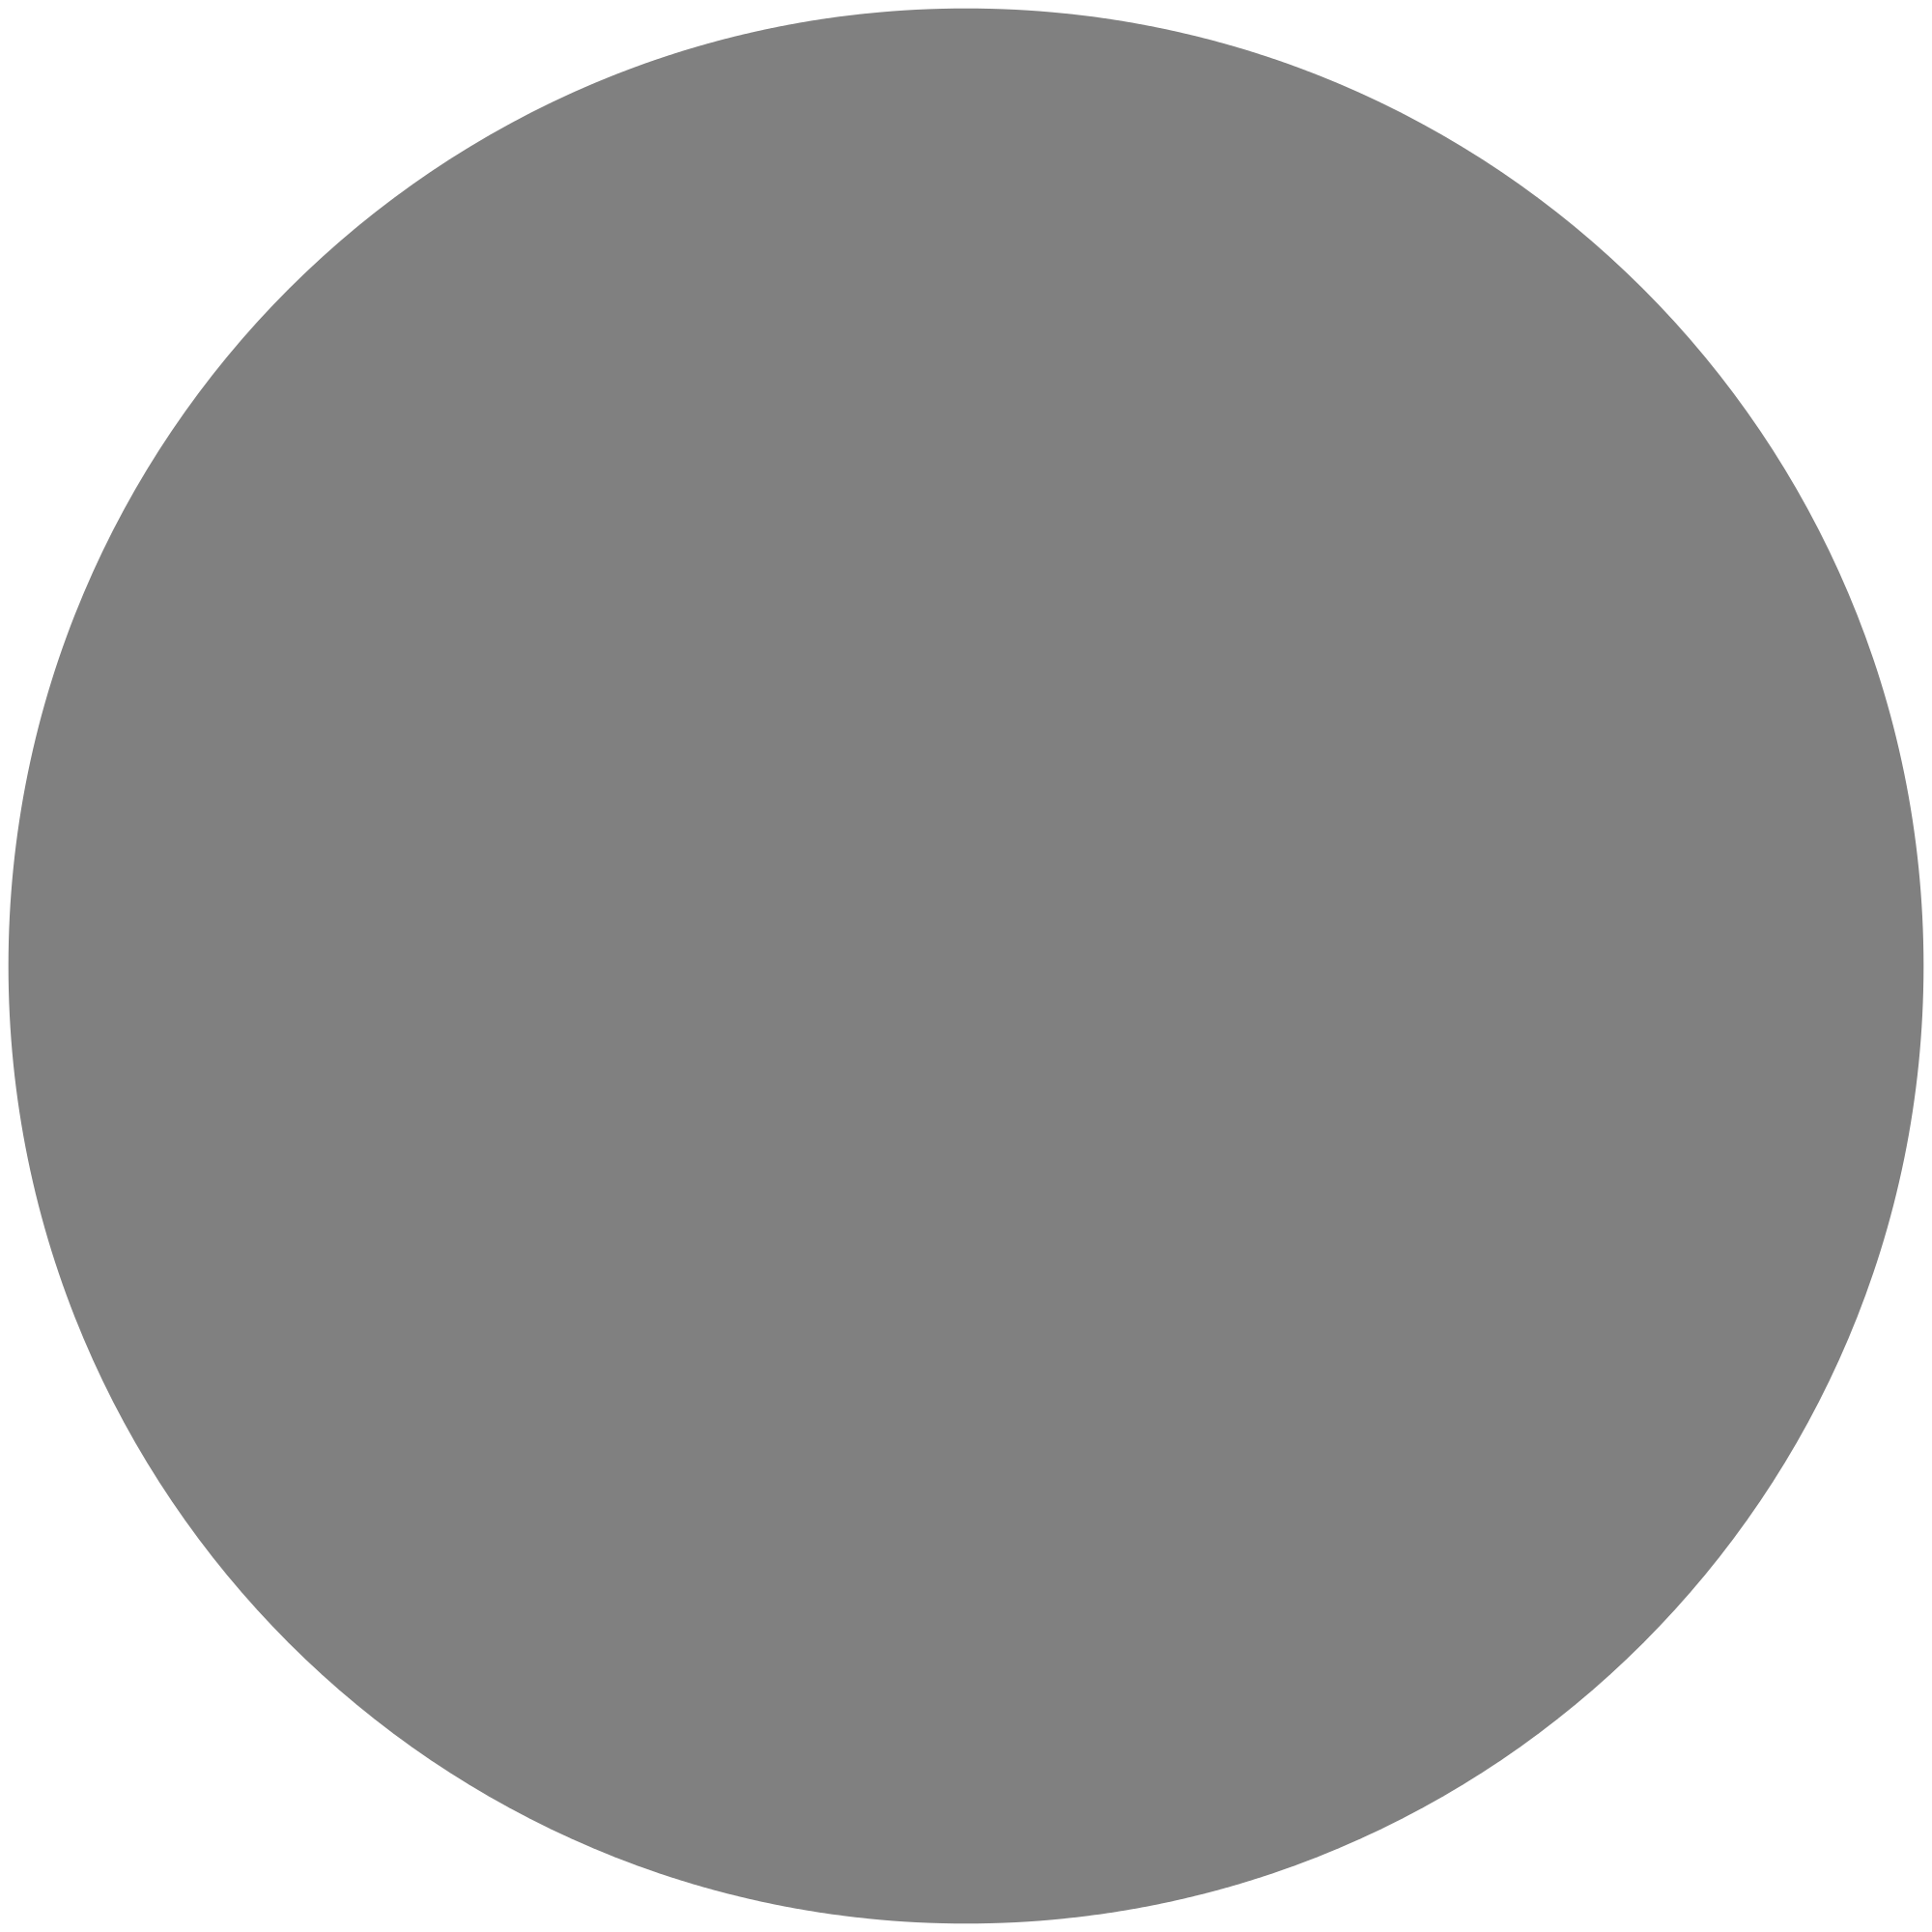 grey oval png